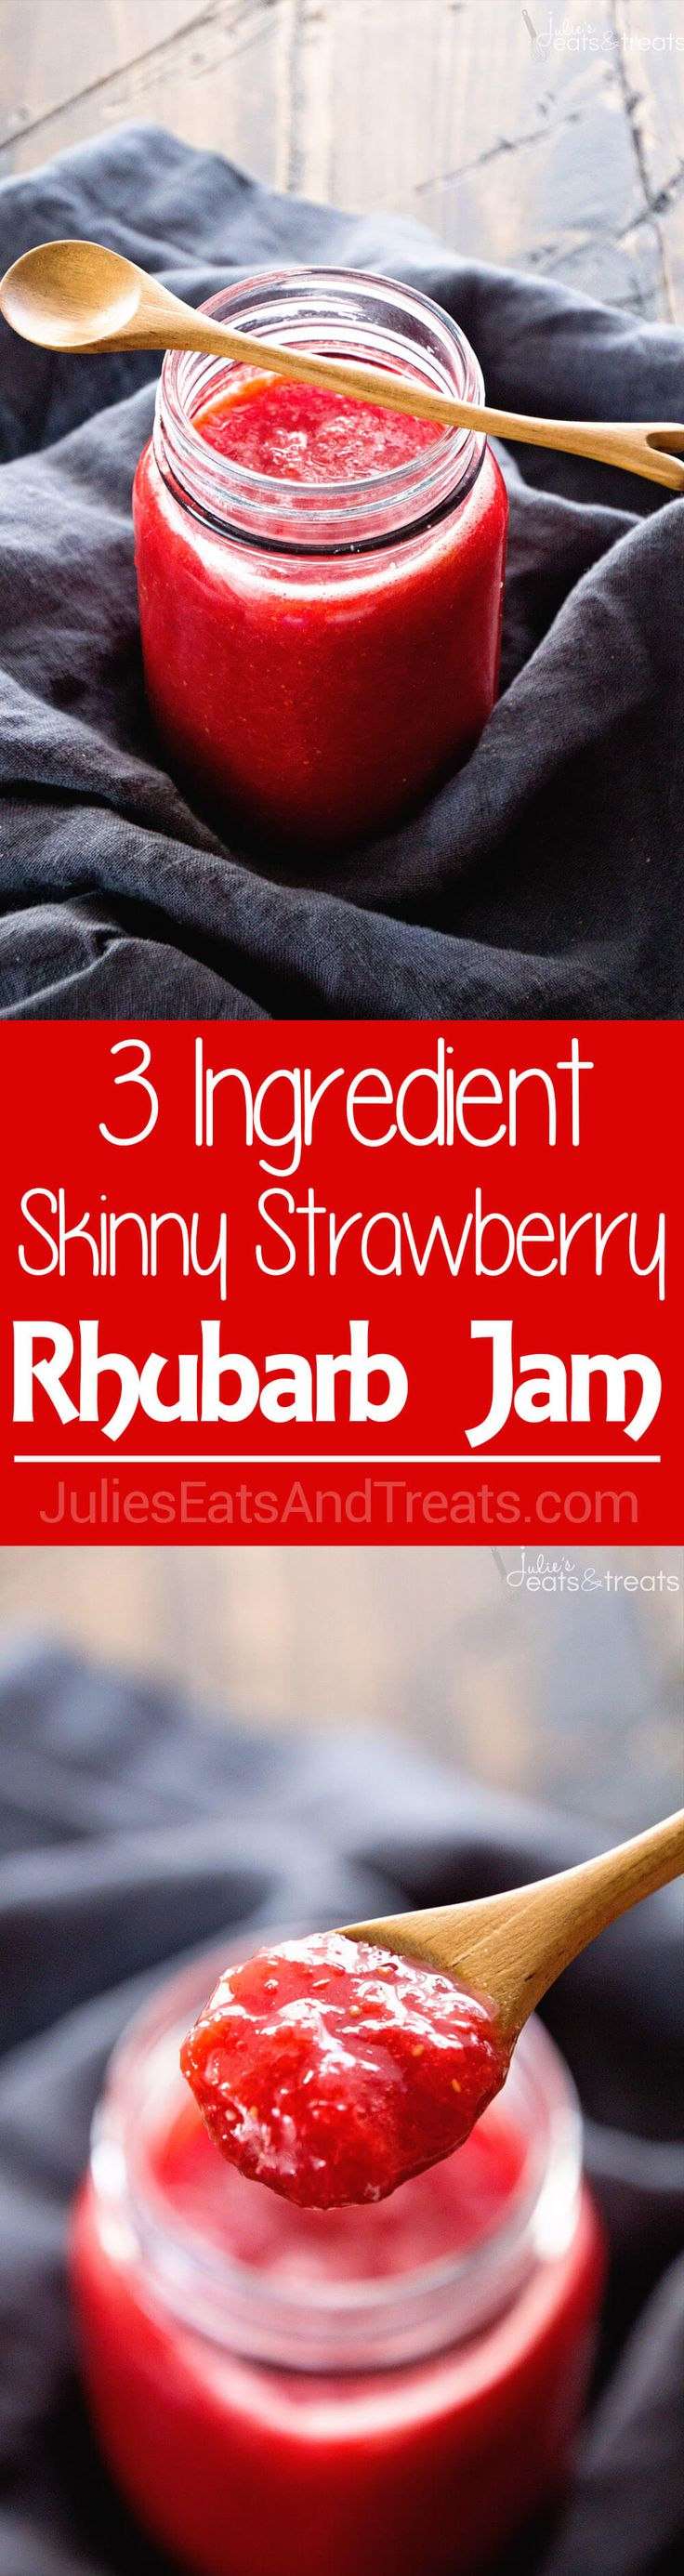 3 Easy Ingredient Strawberry Rhubarb Jam Recipe ~ This Strawberry Rhubarb Jam is so Quick and Delicious that Anyone Can Make It! Plus it's Lightened Up! @truviabrand